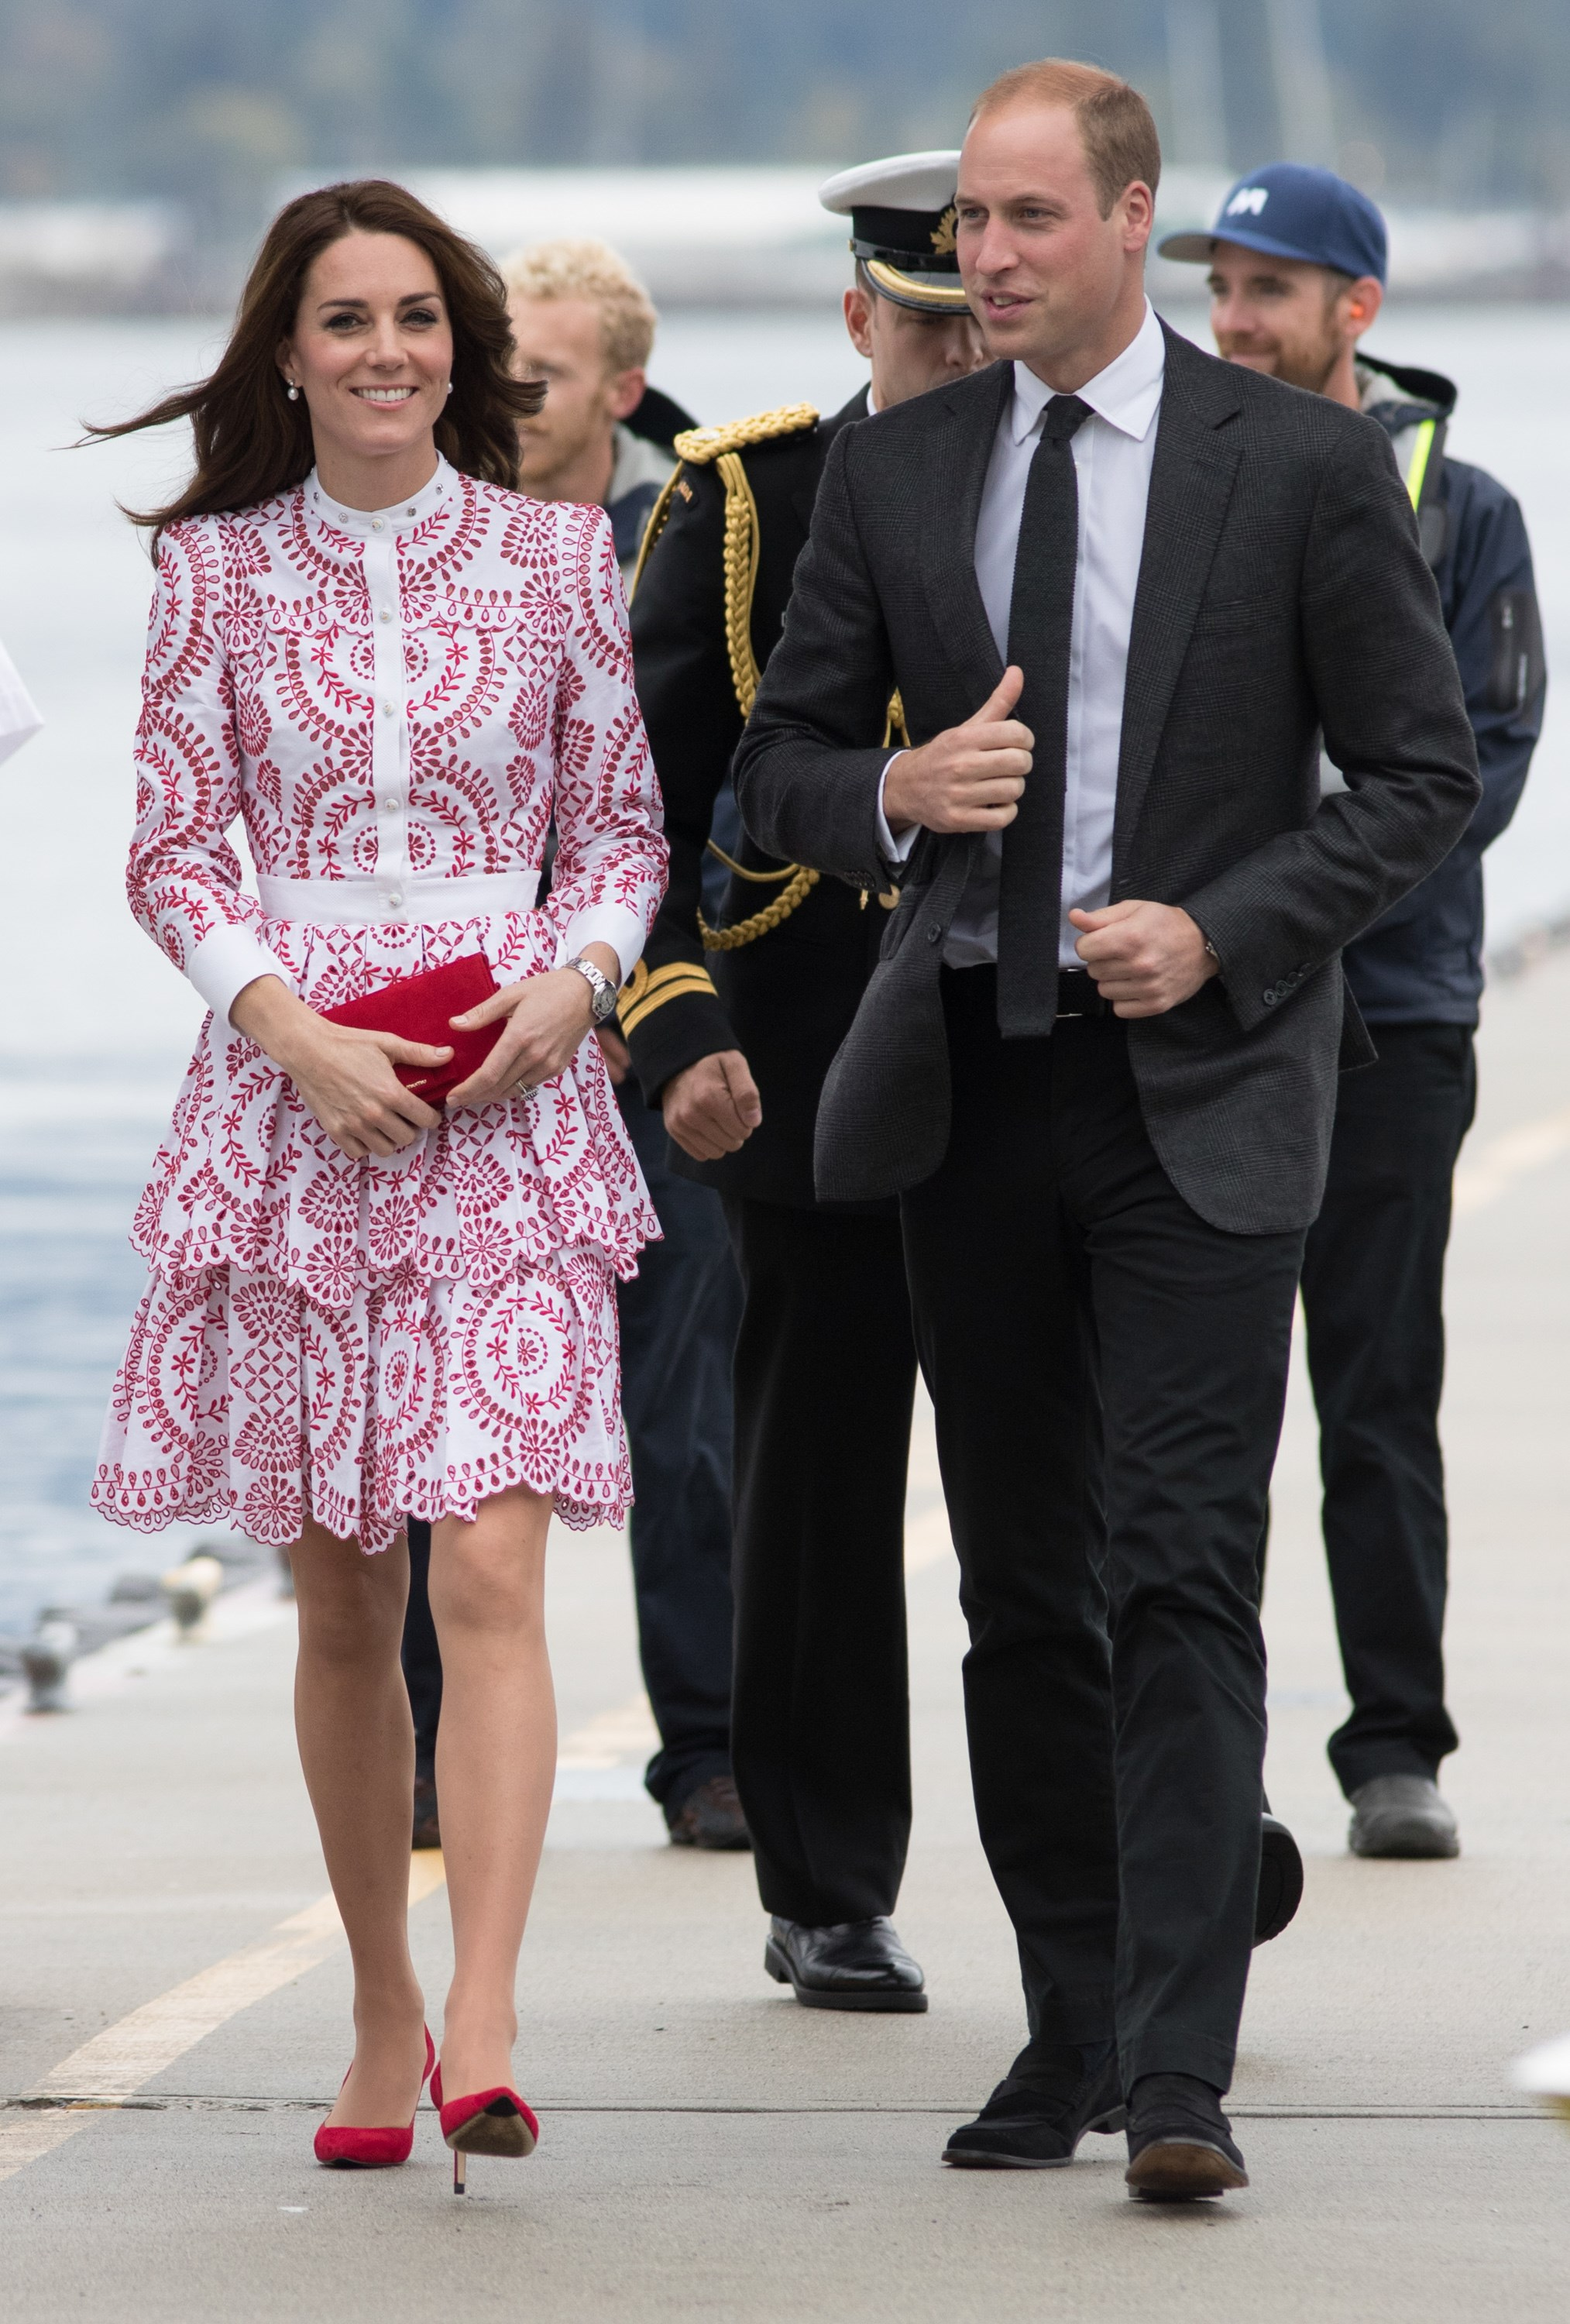 Kate's stunning $8,000 Alexander McQueen gown was a nod to Canada's red and white flag, and has quickly become one of her most talked-about looks so far. Paired perfectly with red shoes and a bag, this was a step away from her usually-favoured sleek silhouette, with a slightly fuller, shorter skirt. The button-up neckline kept things demure.